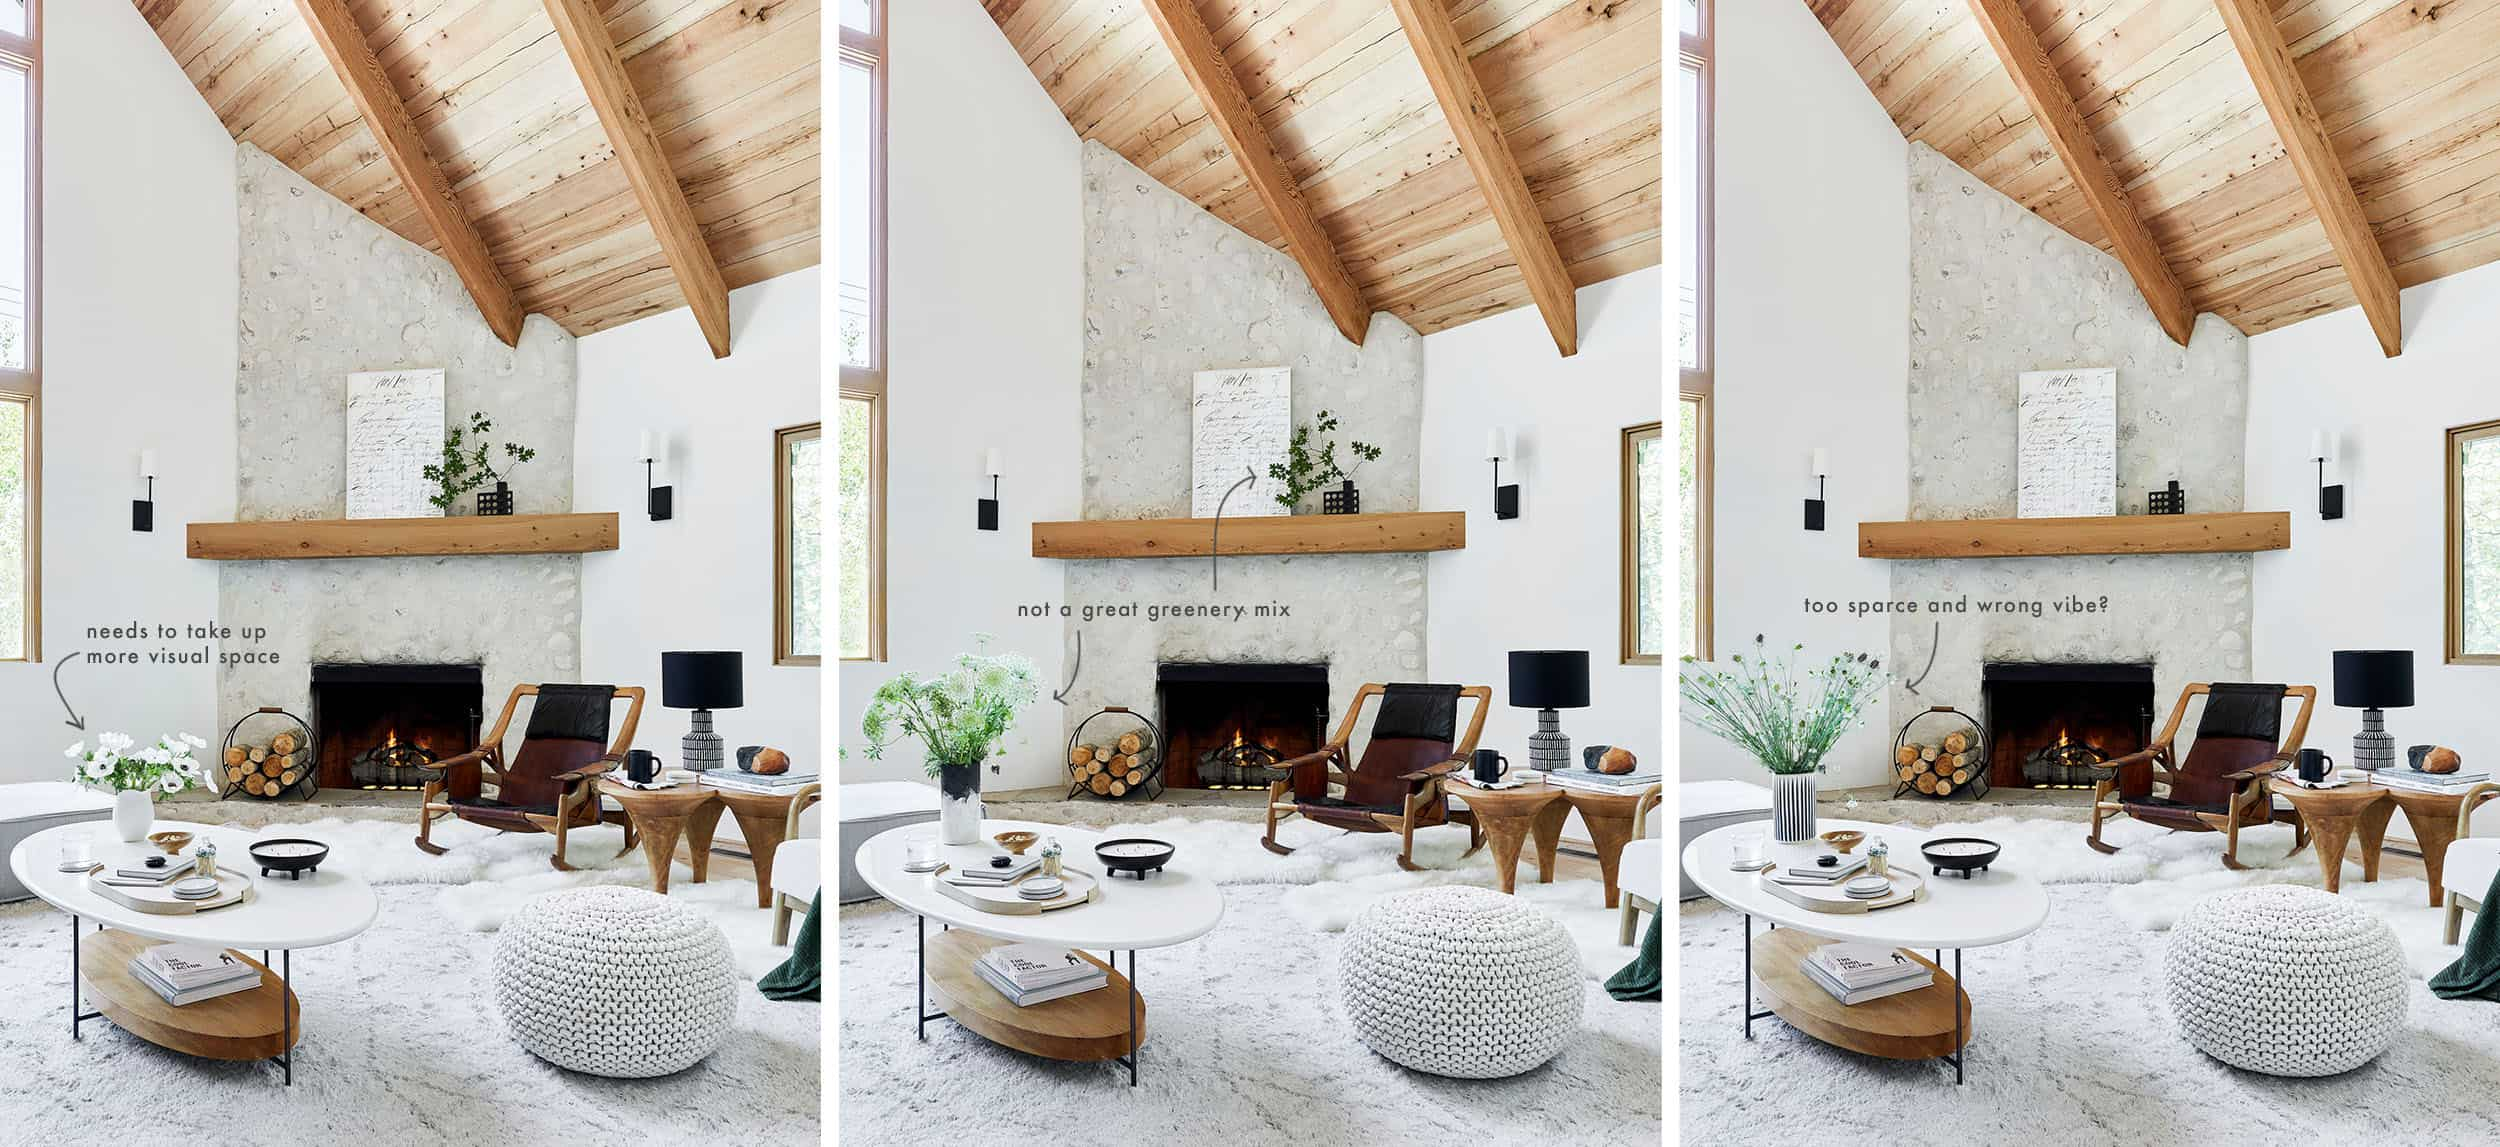 Emily Henderson House Beautuful Styling Side By Side 2 1